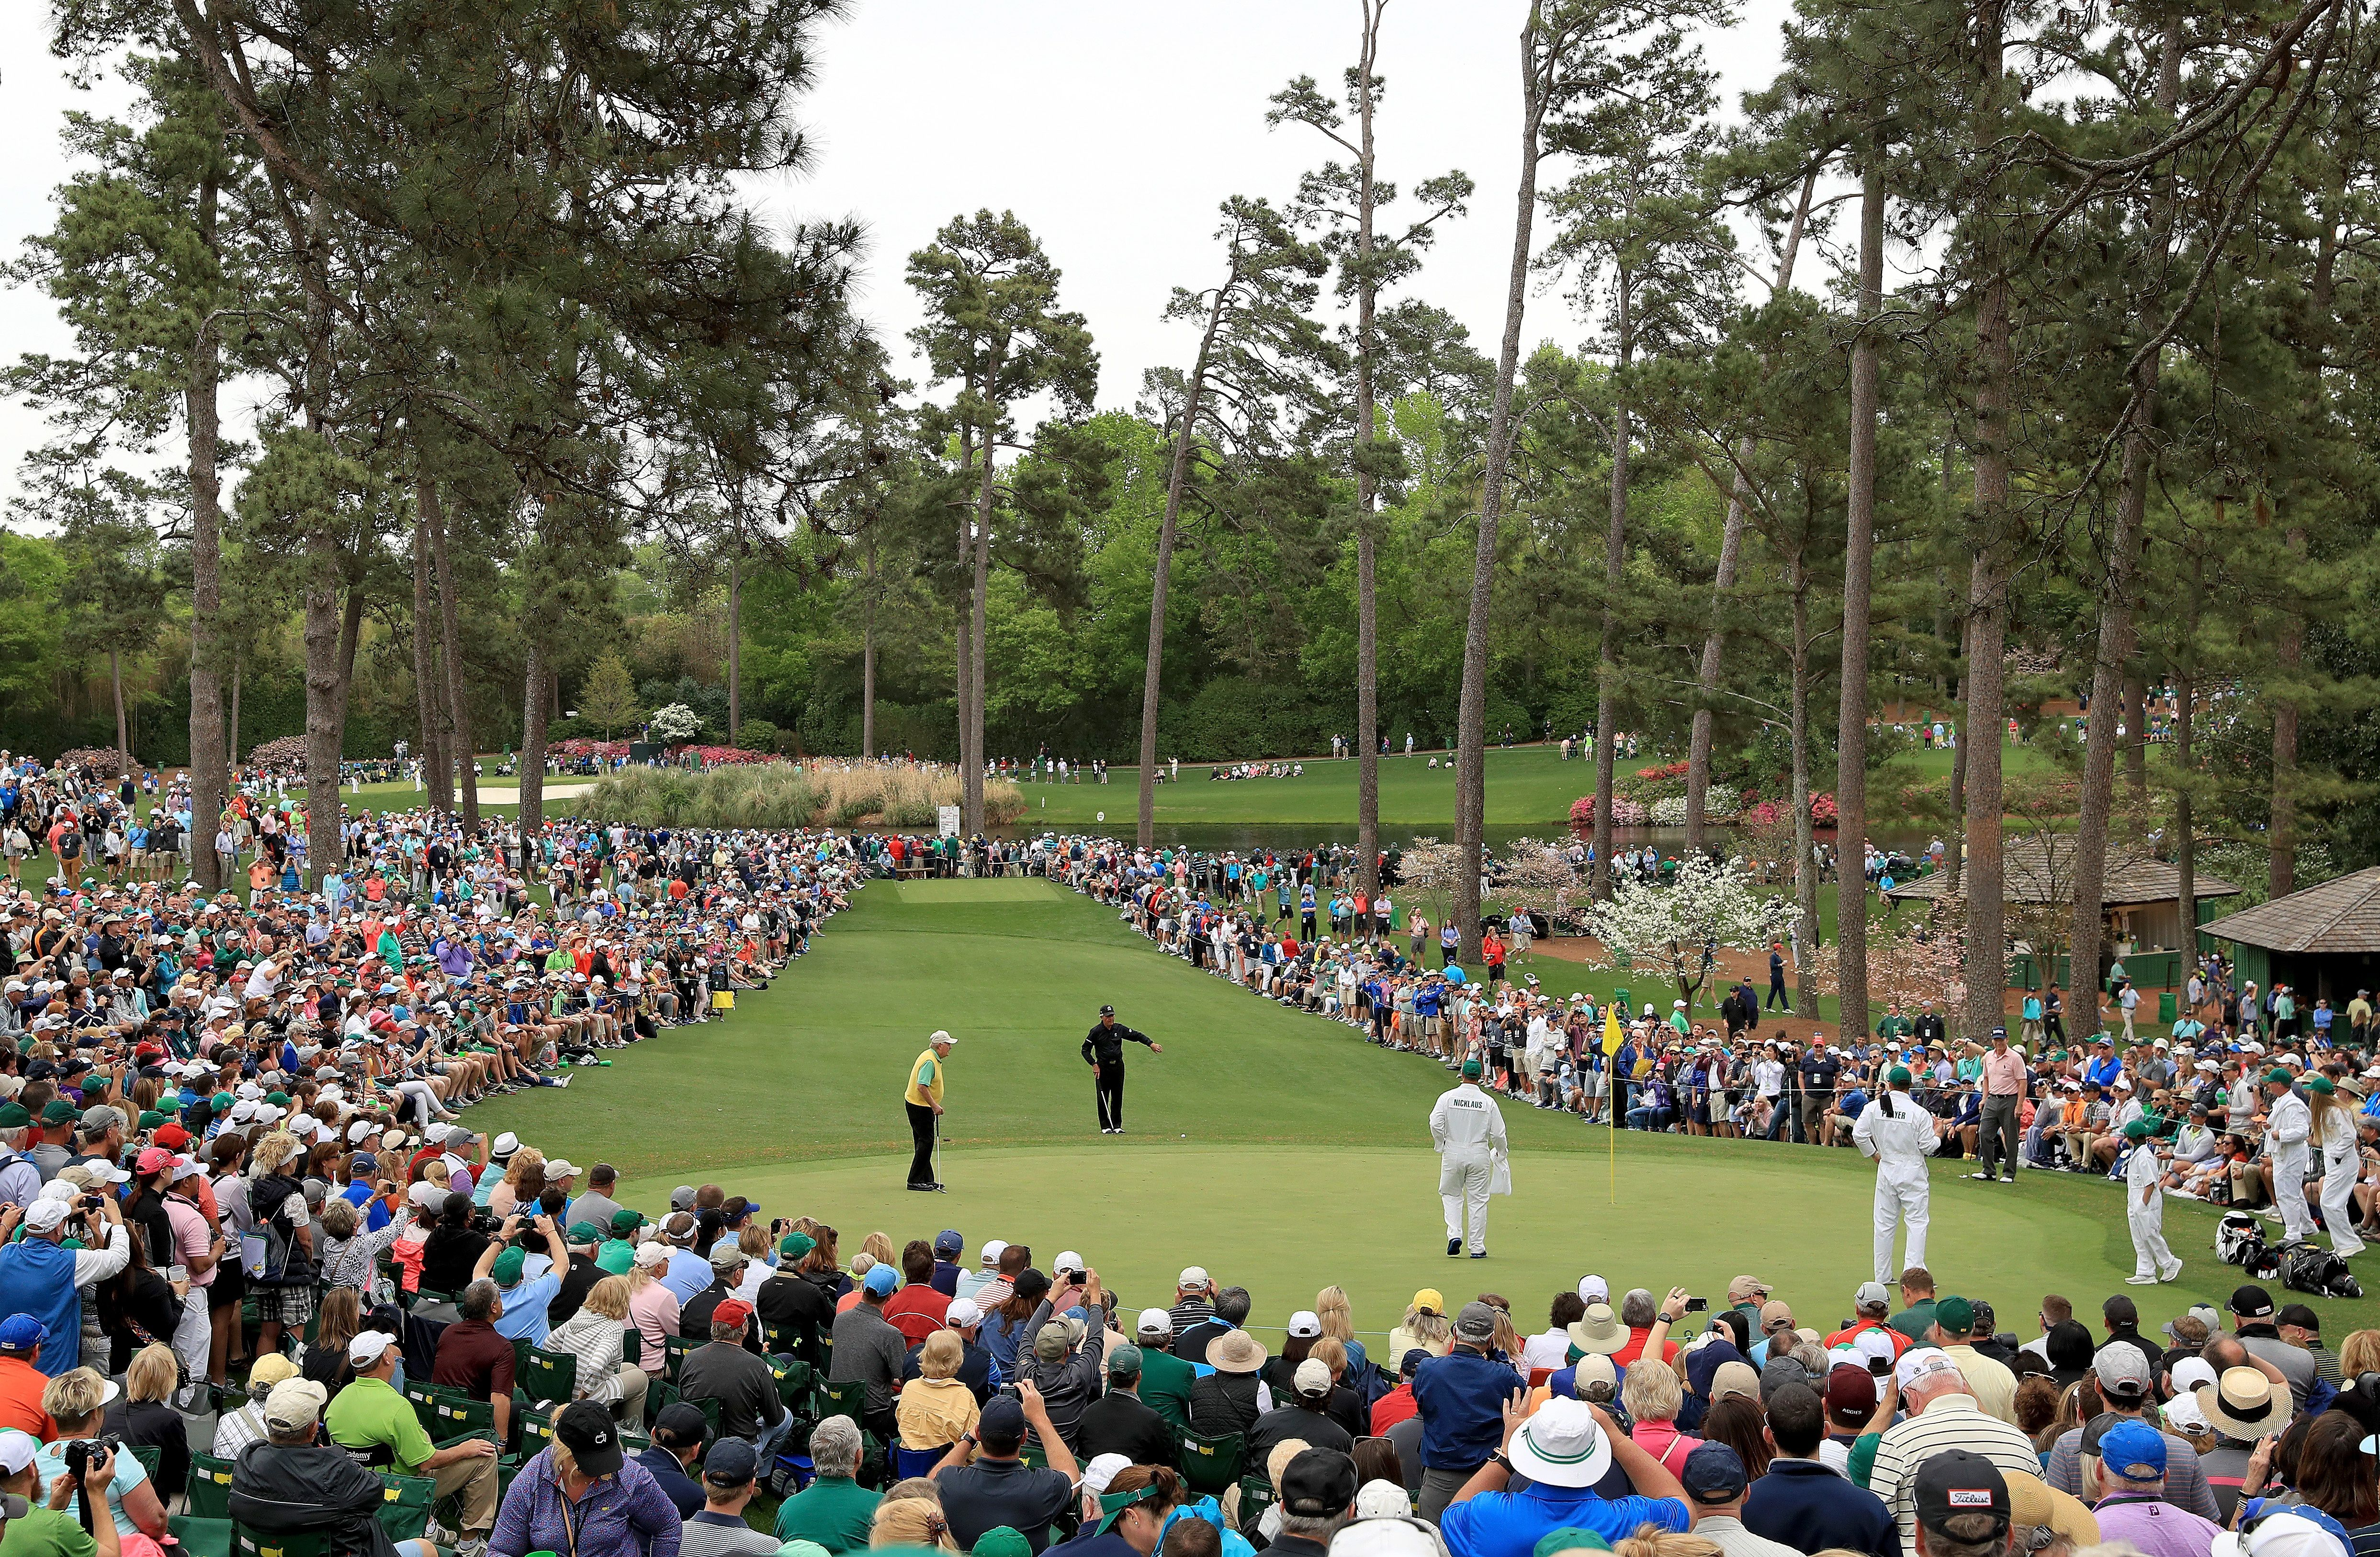 Jack Nicklaus, Gary Player, Tom Watson and their caddies on the 7th green of the Par-3 Course.